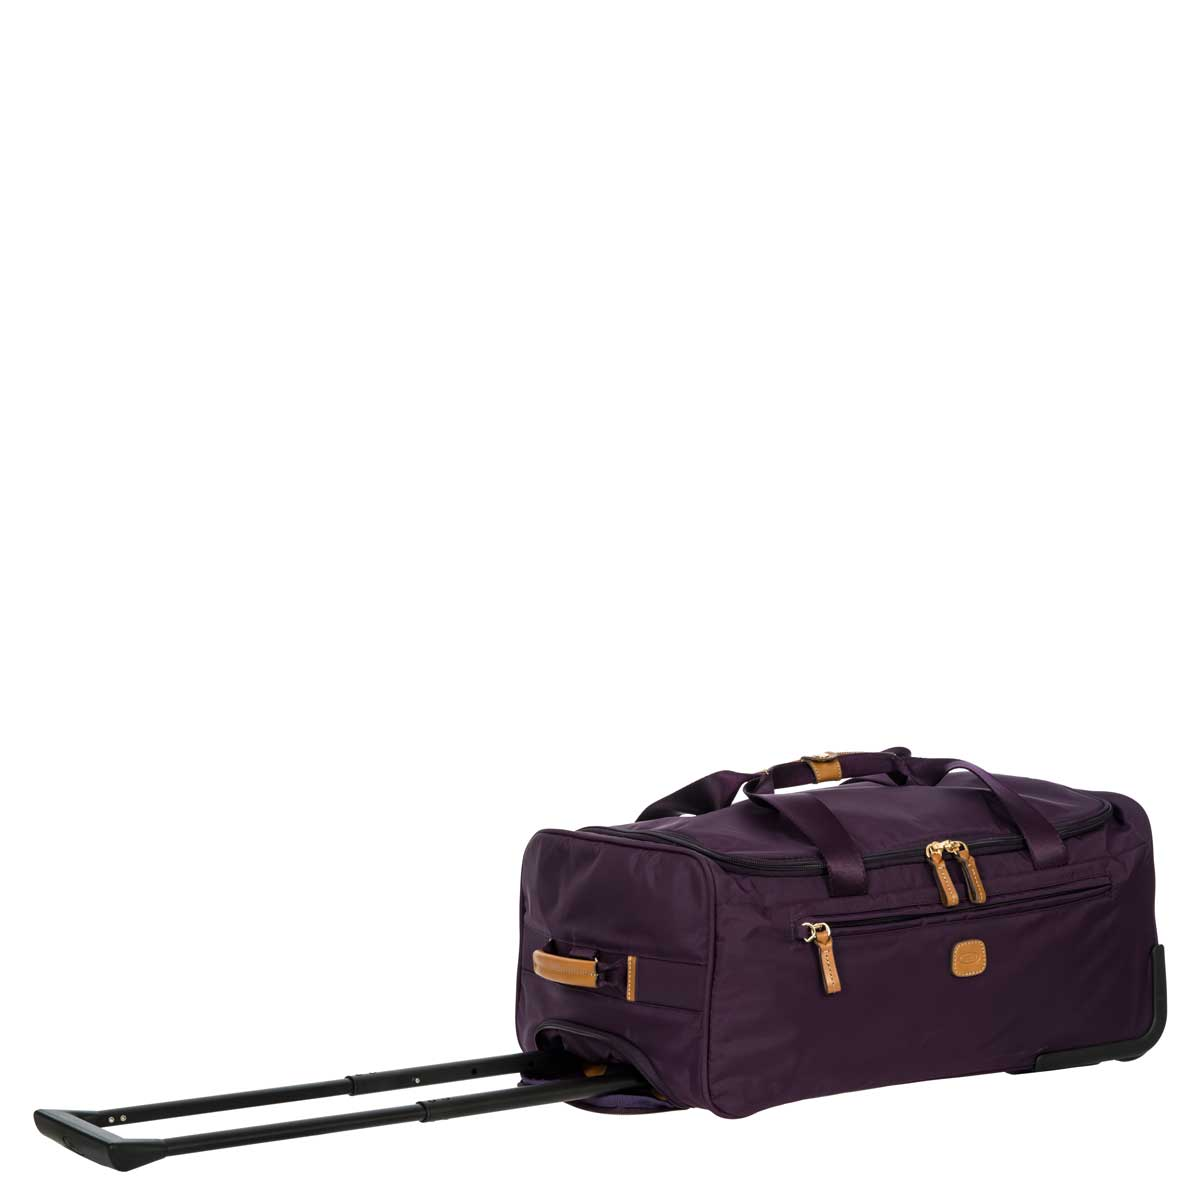 X Bag 21 Carry On Rolling Duffle Travel Bags Bric S Milano